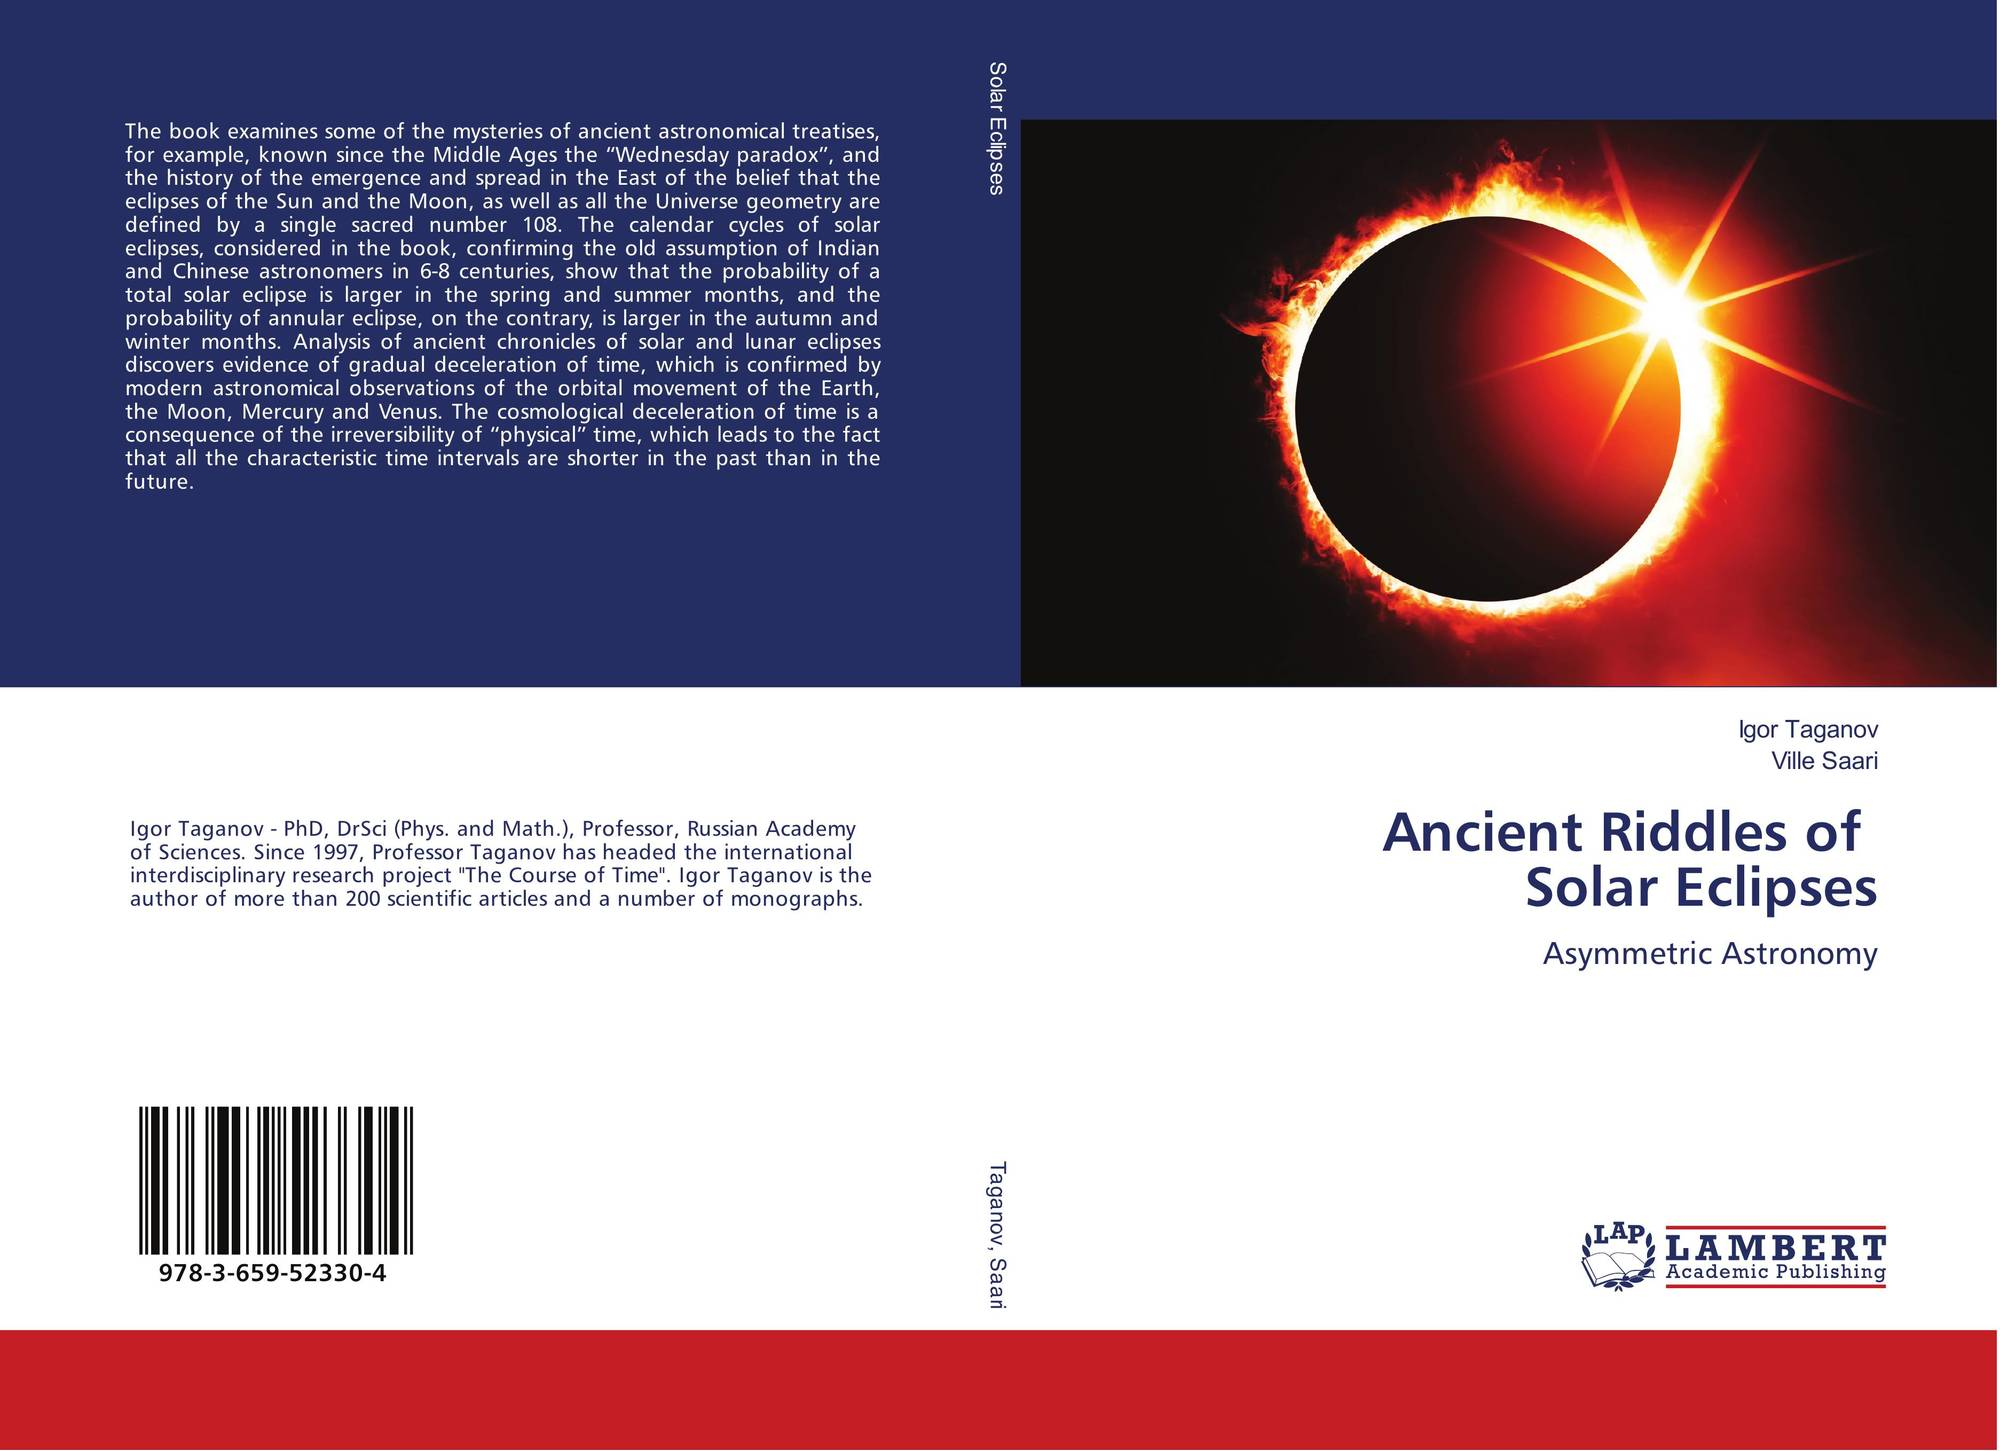 Ancient Riddles of Solar Eclipses, 978-3-659-52330-4, 3659523305